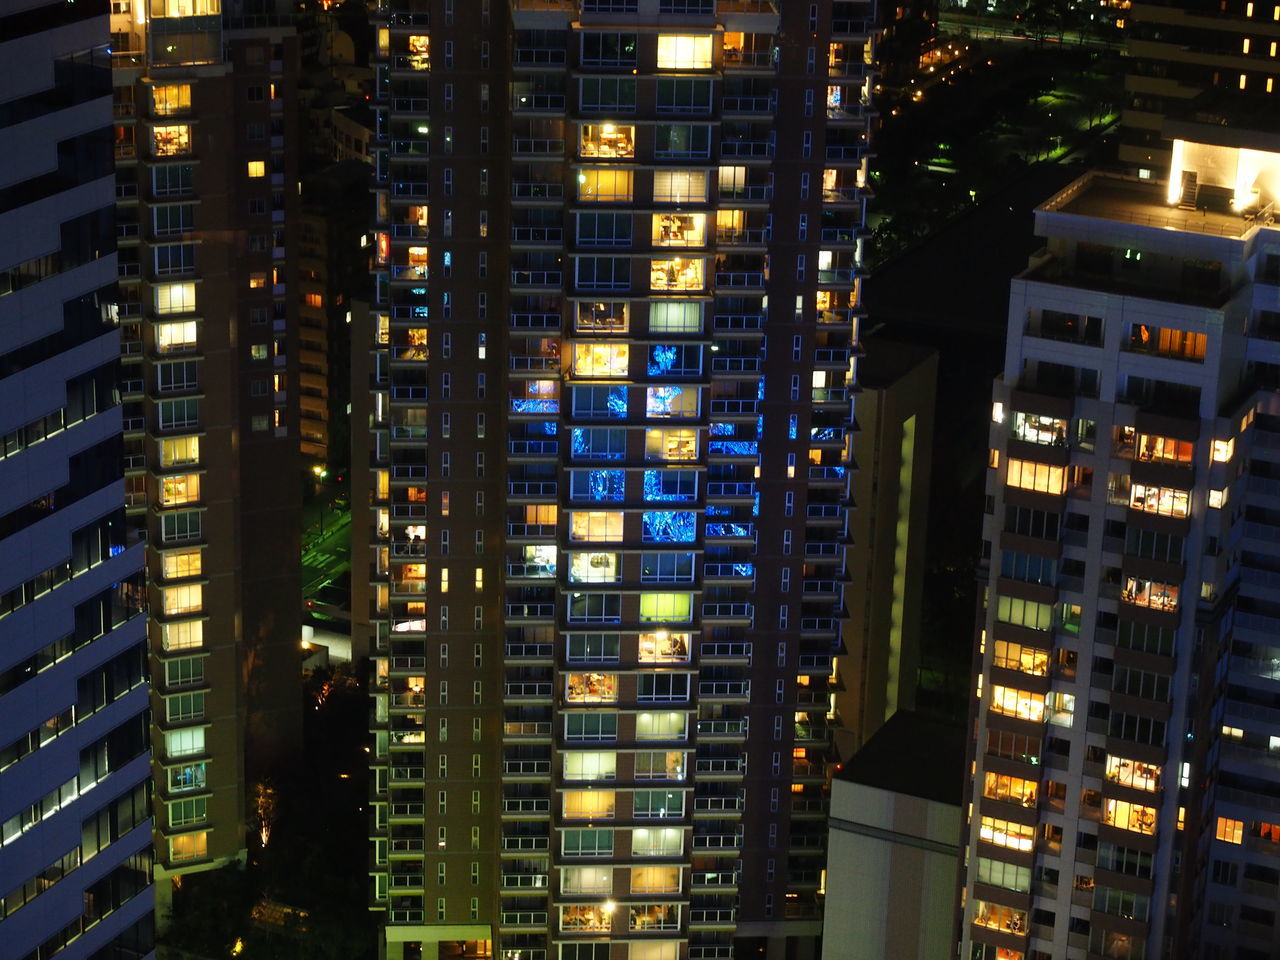 Square Night Apartment Architecture Background Bird Eyes View Building Exterior City Cityscape Colorful Condo Fukuoka Fukuoka Tower Fukuoka,Japan High Japan Light Modern Night Night Lights Residential  Room Row Screen Skyscraper Square Tall